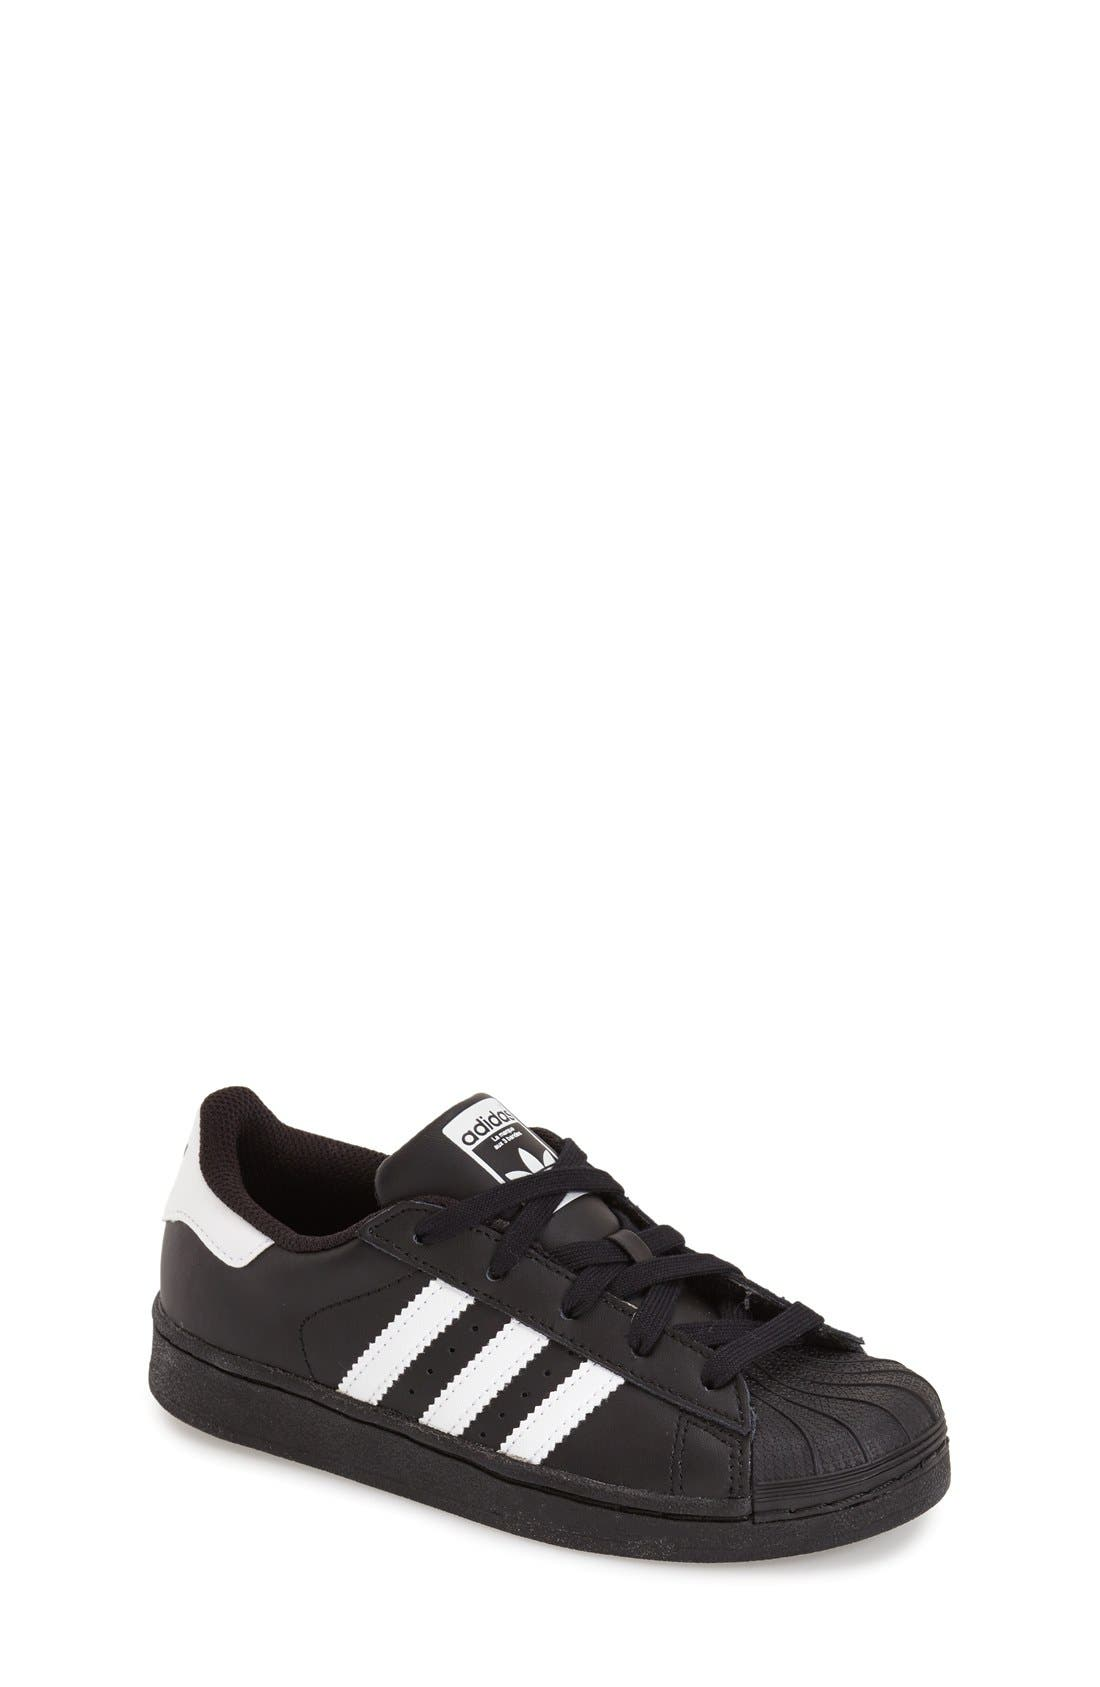 adidas \u0027Superstar\u0027 Sneaker (Baby, Walker, Toddler, Little Kid \u0026 Big